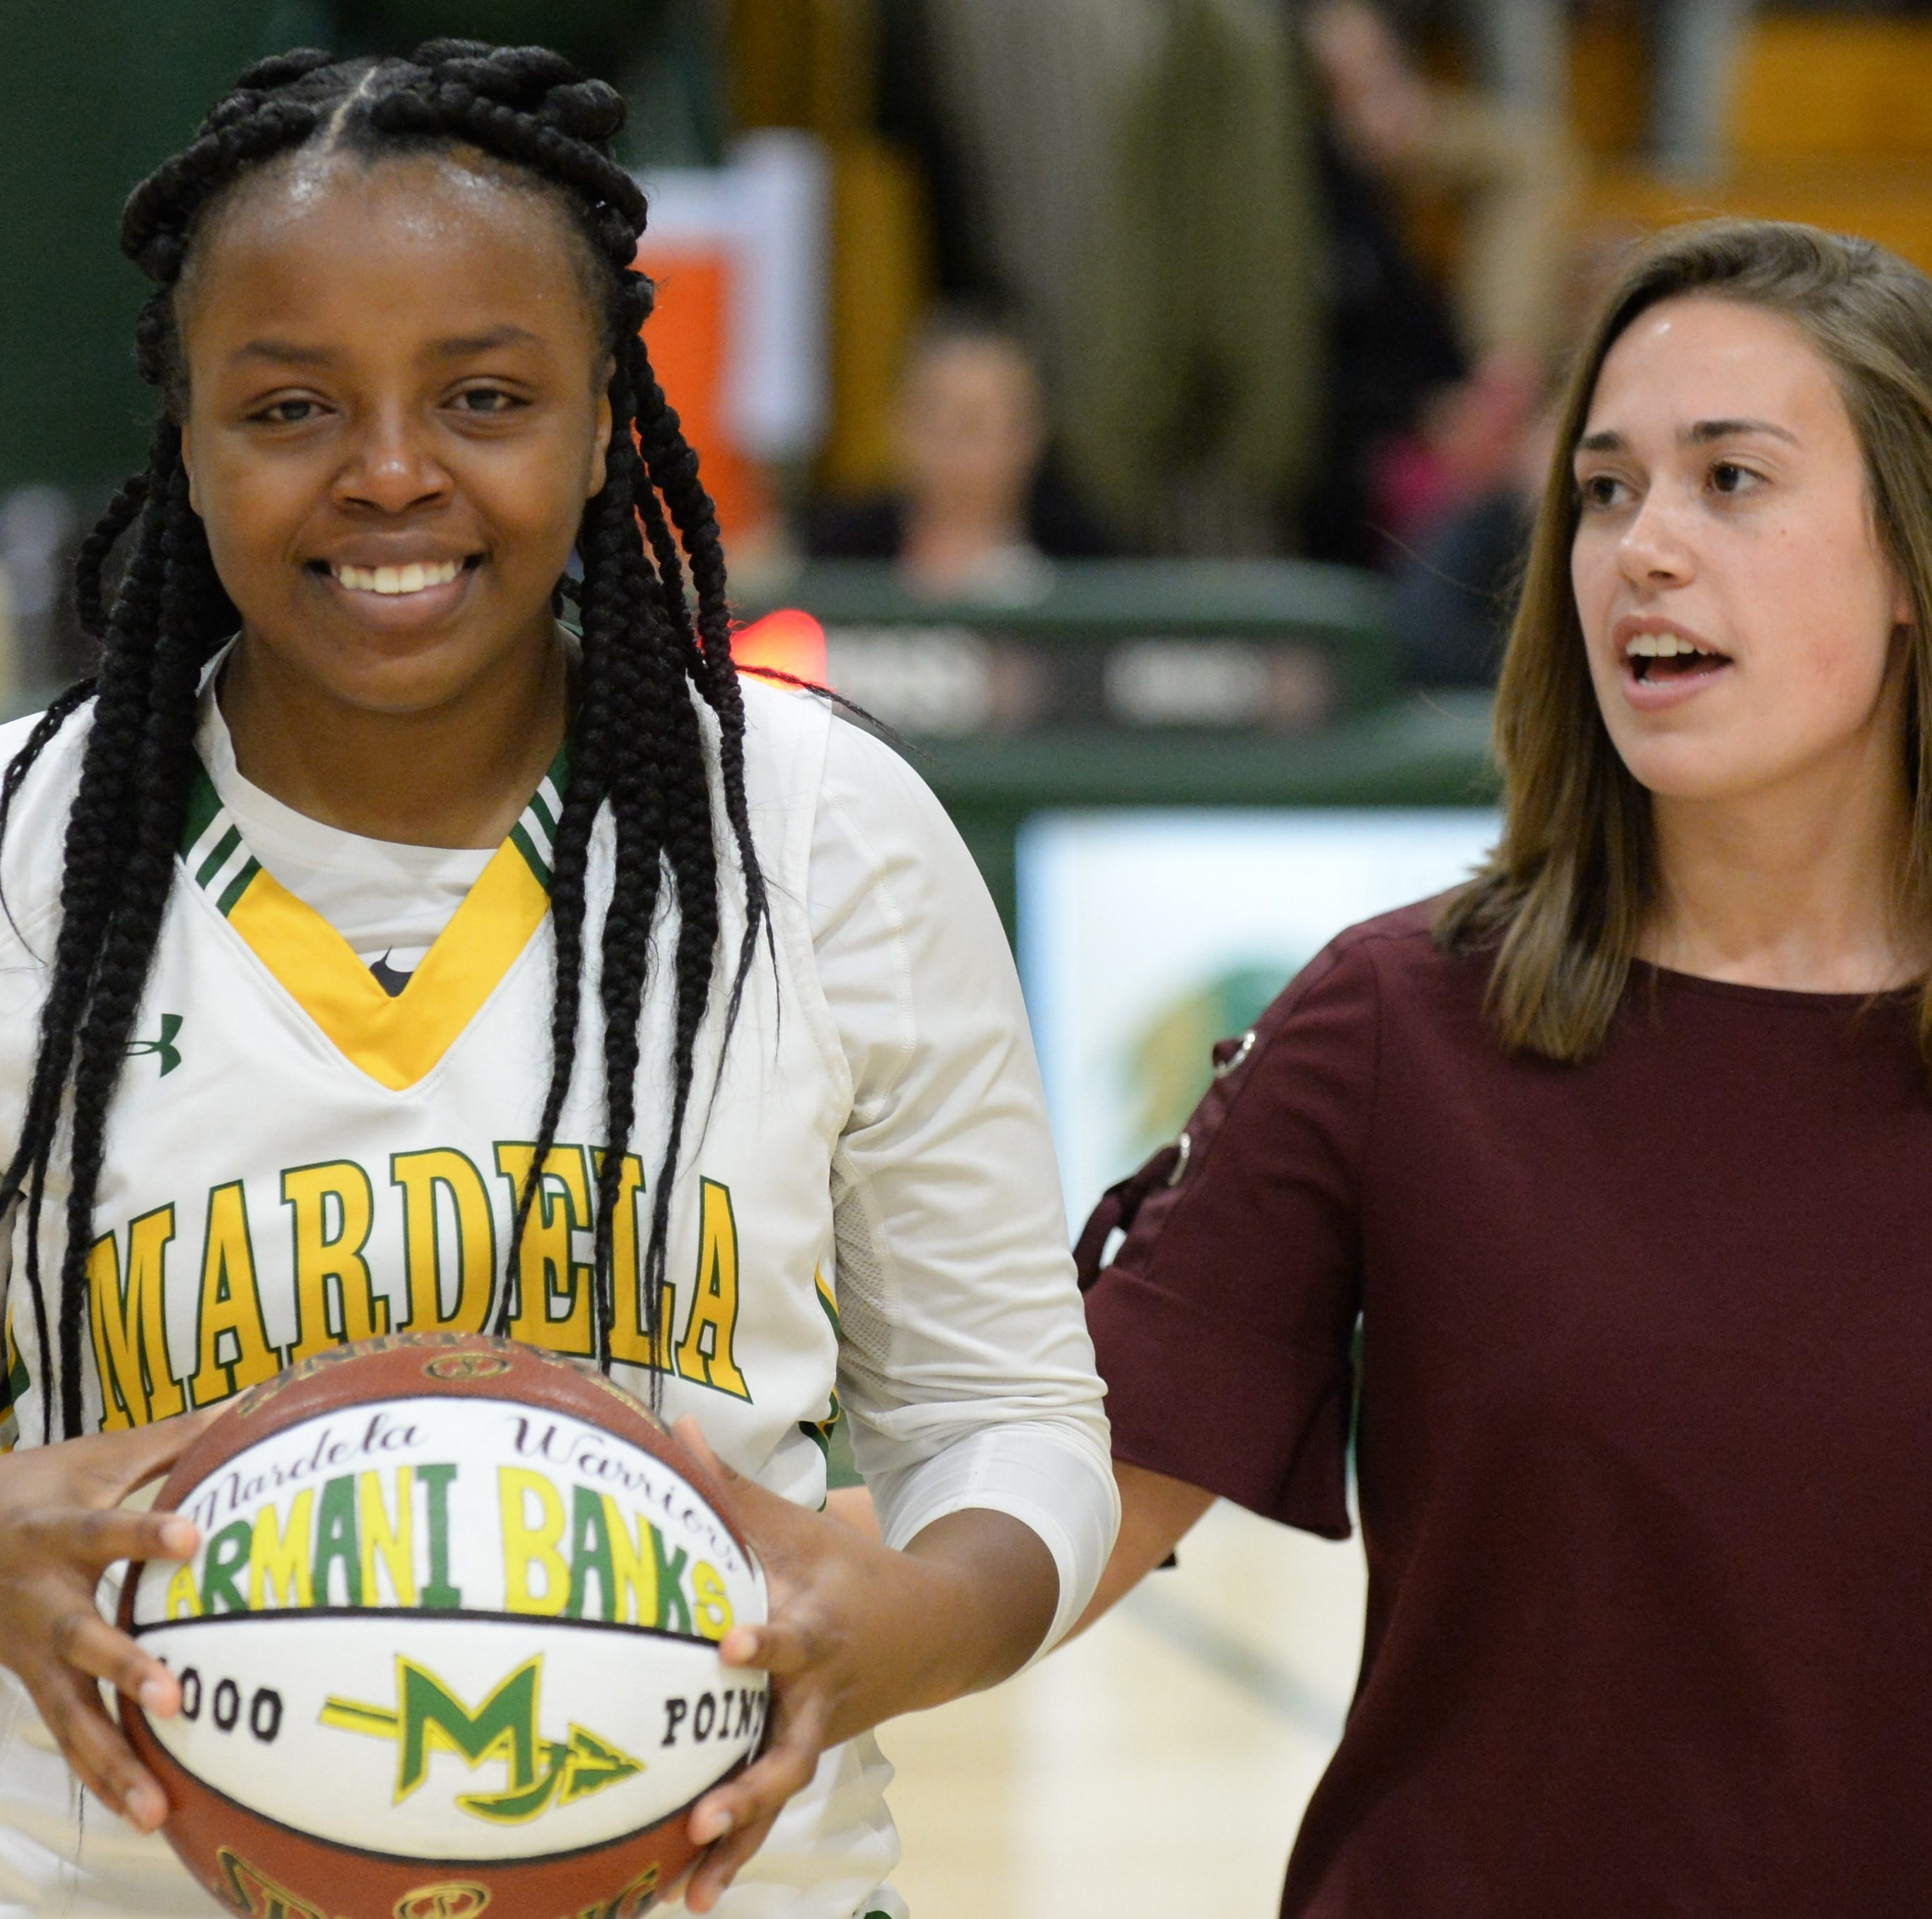 Mardela basketball player goes from cheerleader to 1,000-point scorer